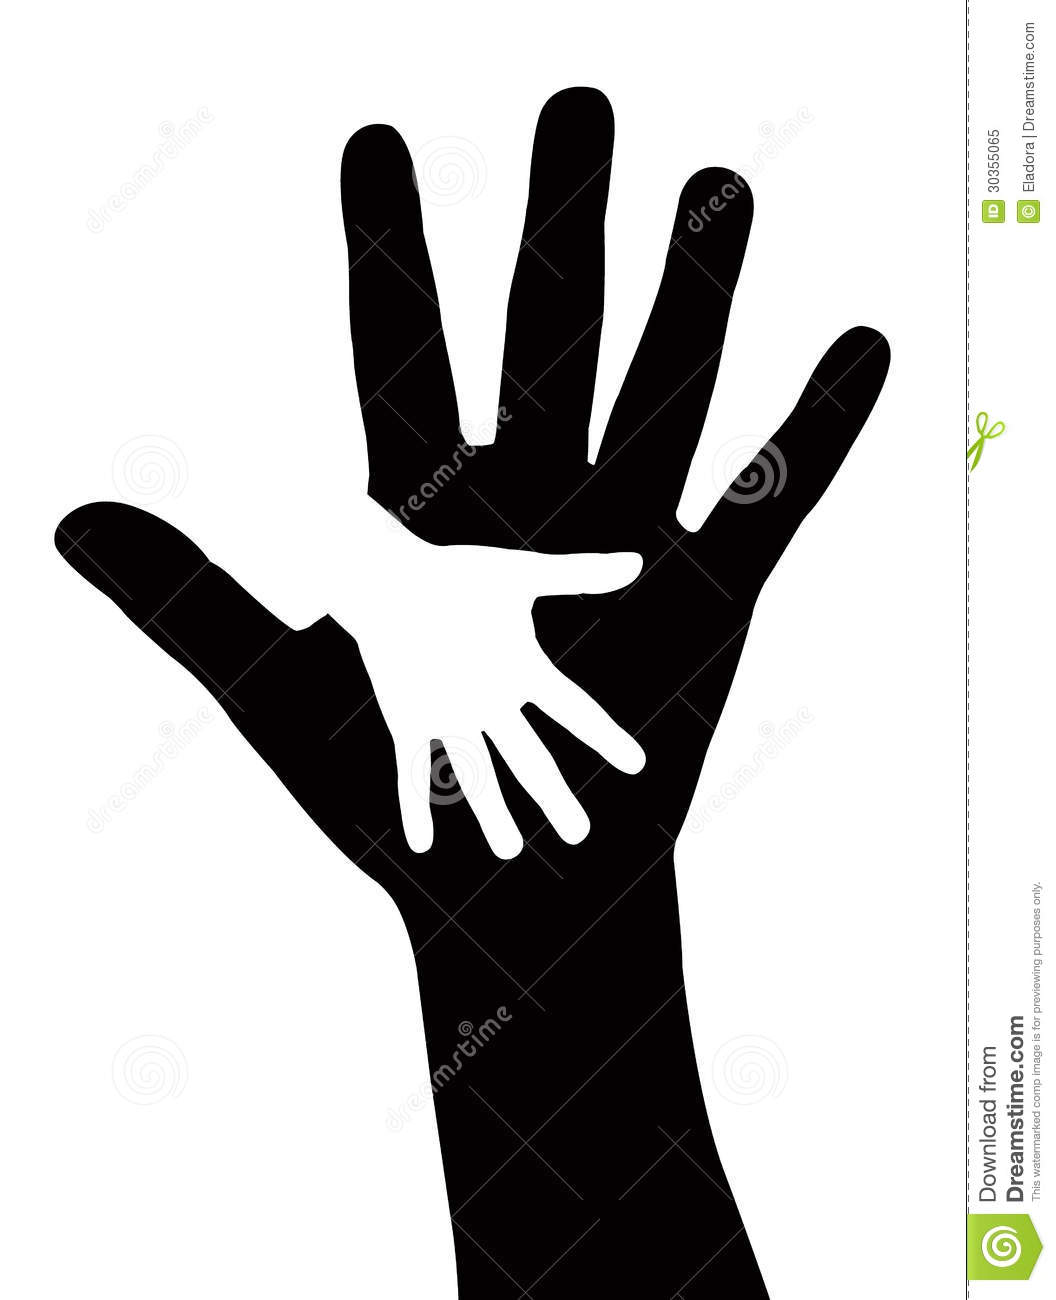 Helping hands vector stock vector. Image of illustration ...